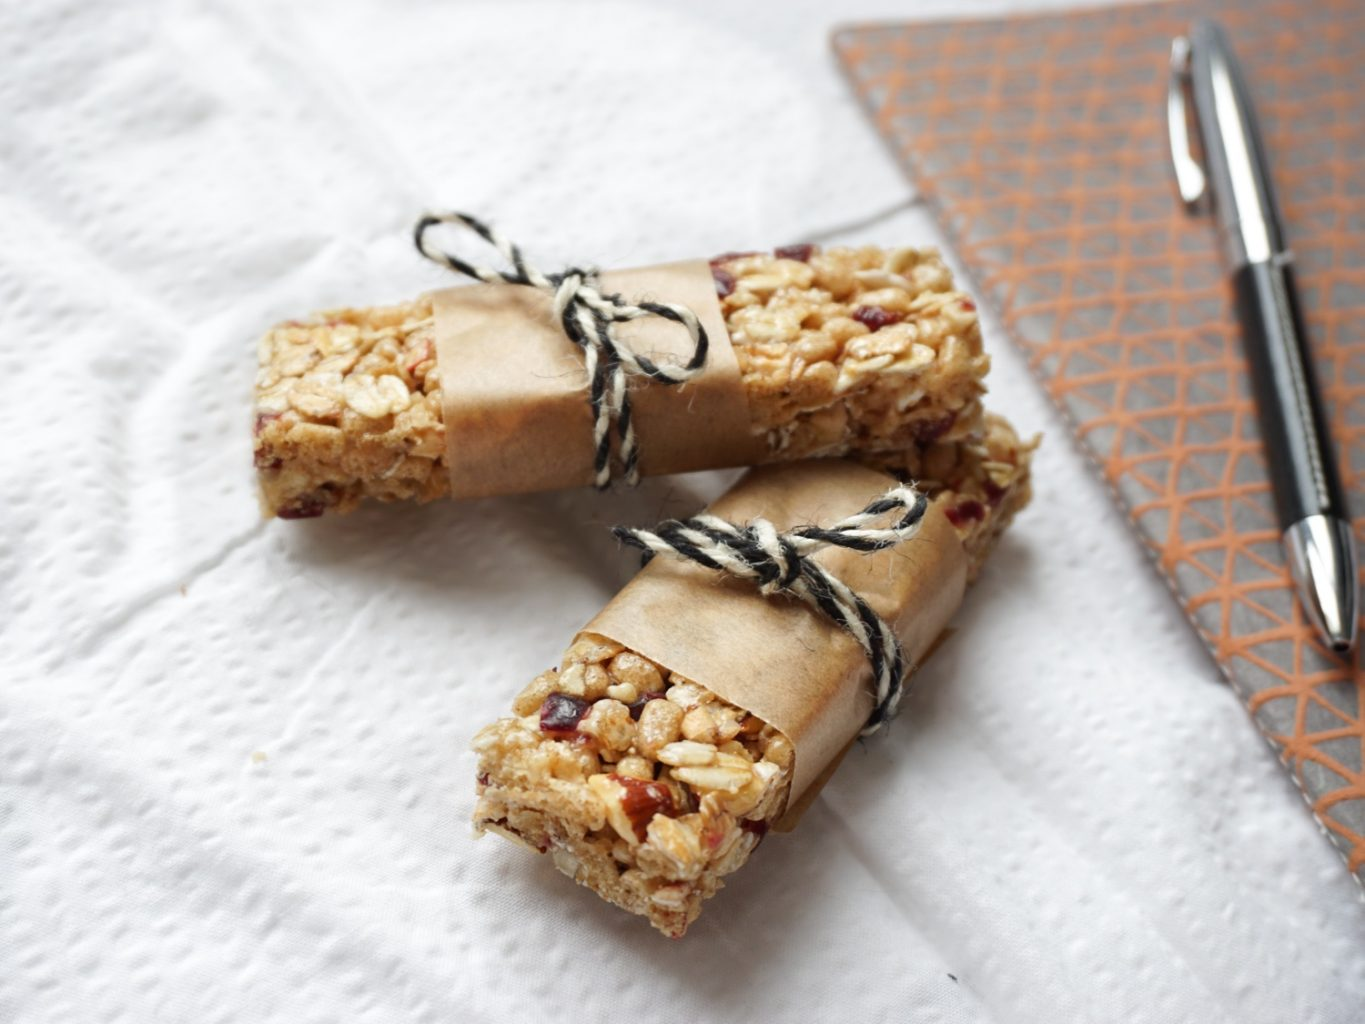 Muesli, Muesli bar, granola, diy, tutorial, food, brainfood